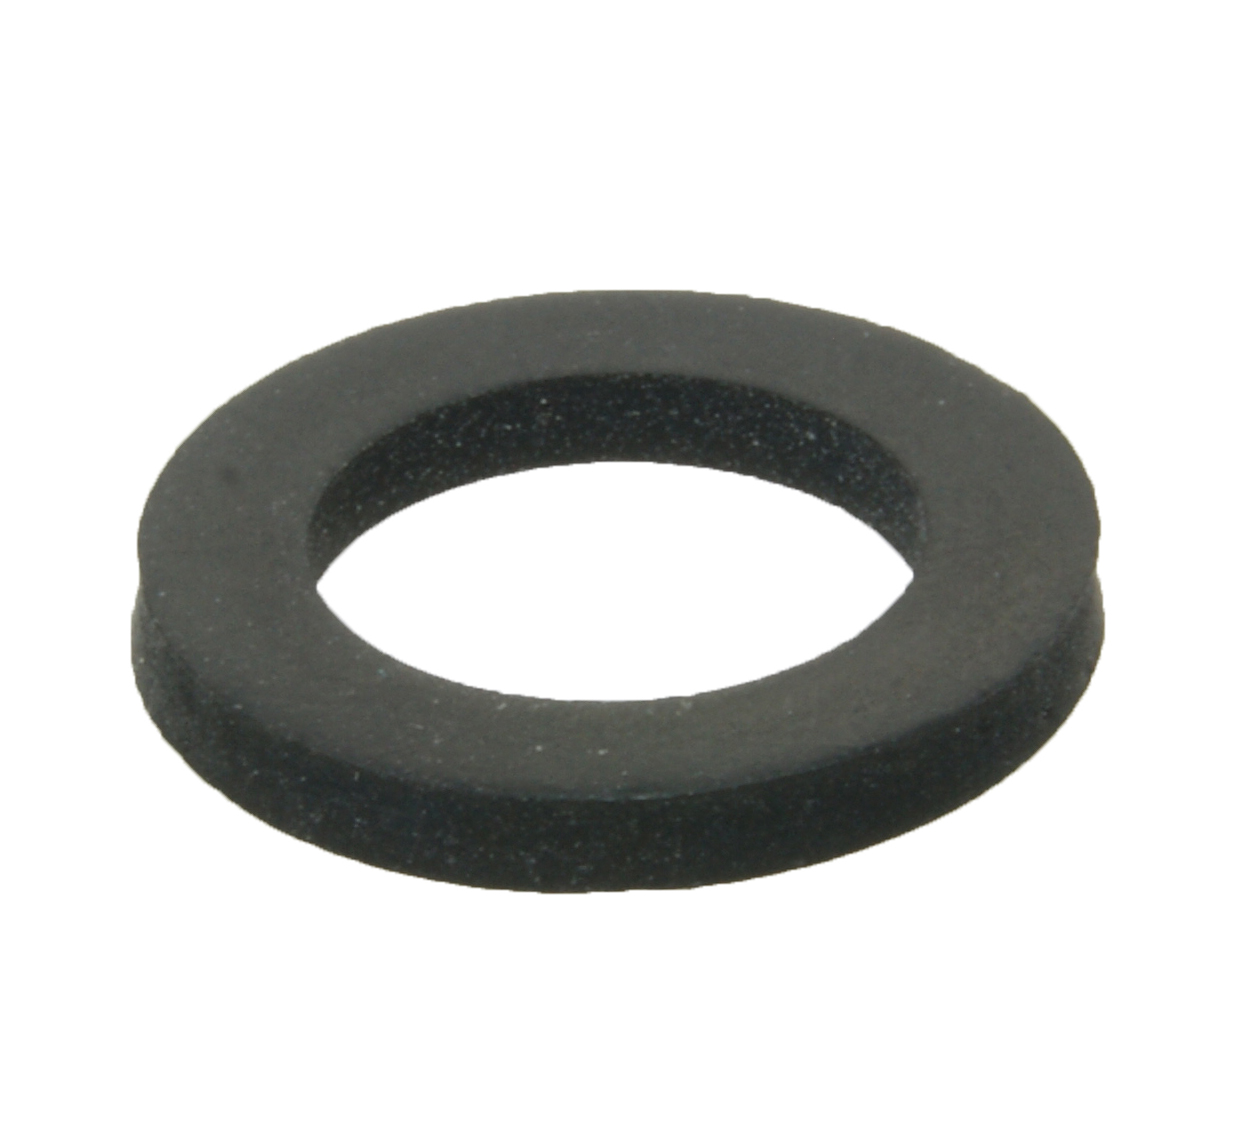 Joint 17x11x2 EPDM